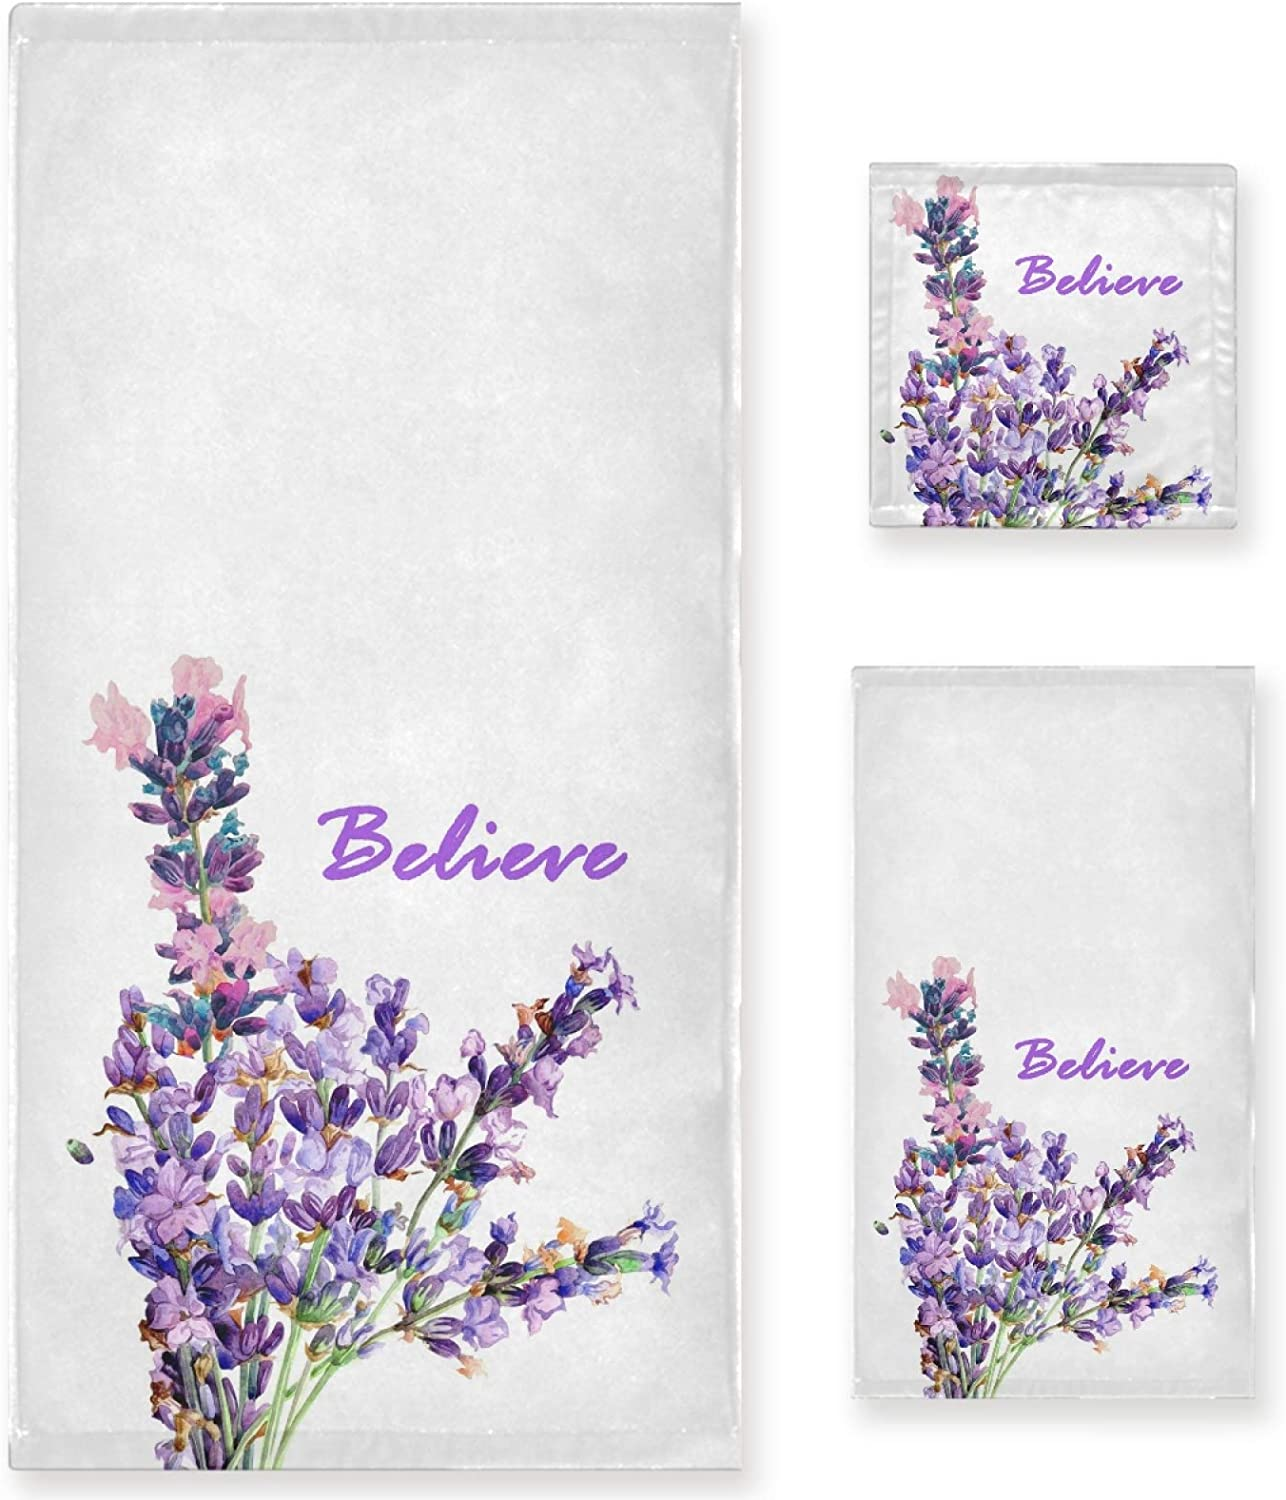 lowest price Naanle Believe Lavender Towel Spring new work one after another 3 Piece Bath Tow Set Flower Purple